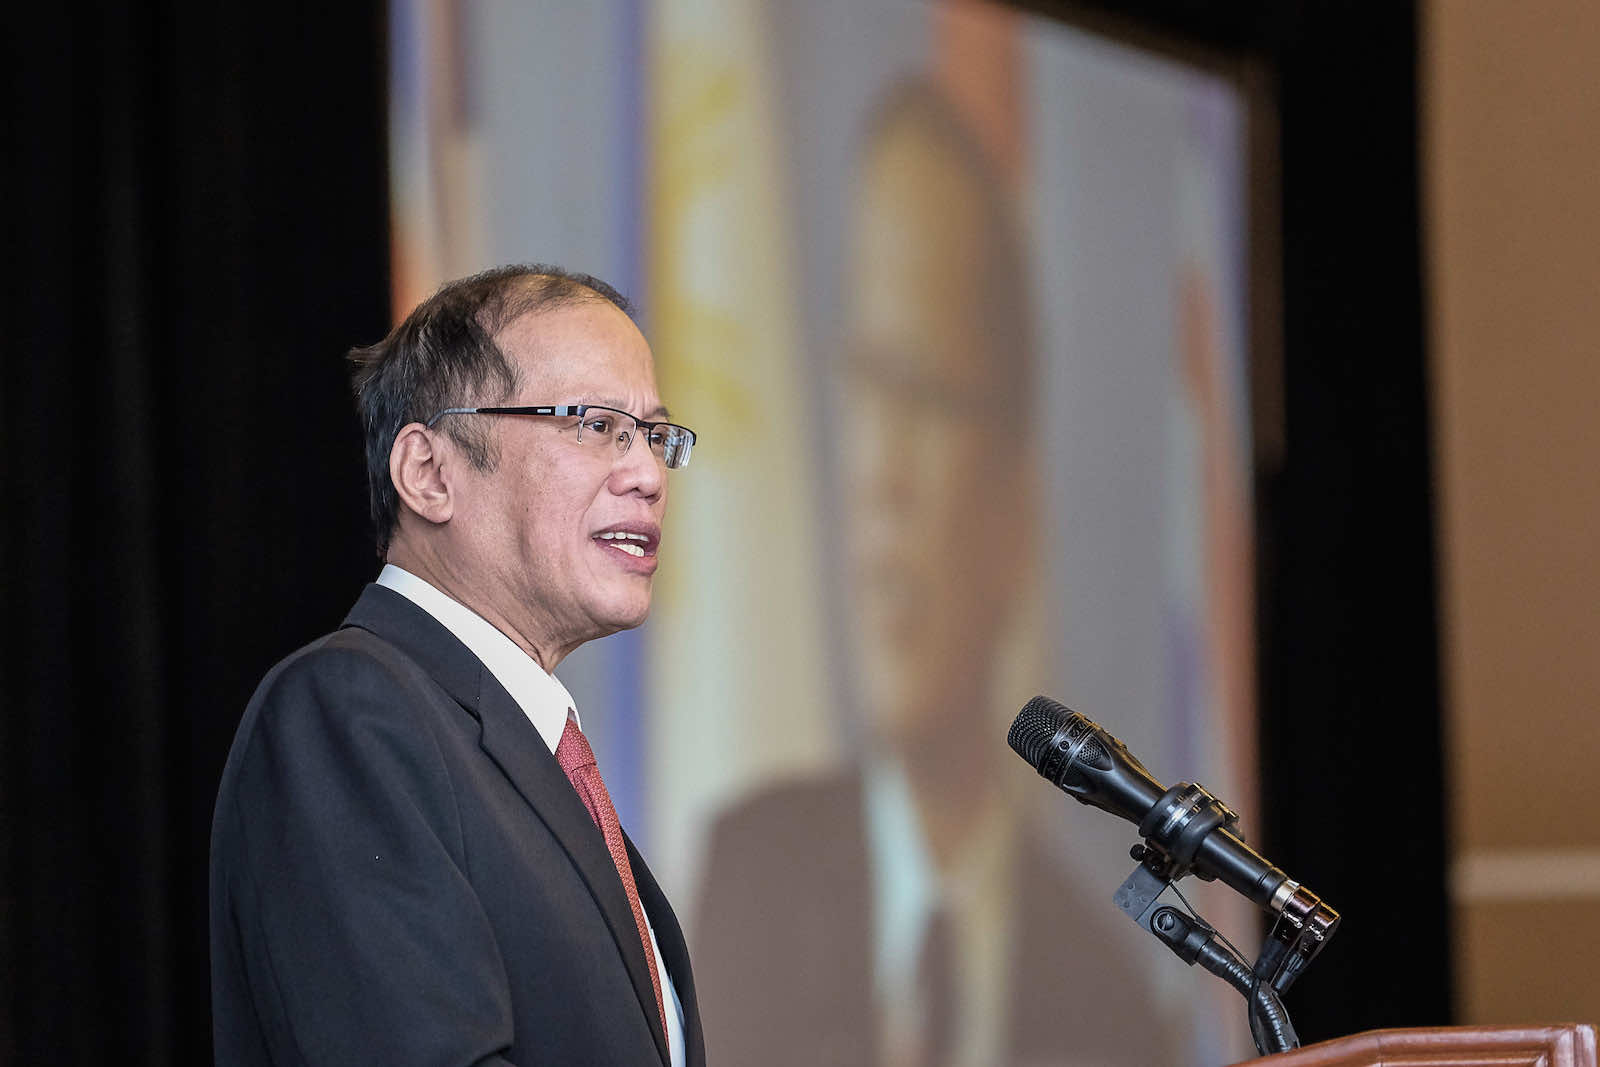 President Benigno S. Aquino III of the Philippines during a 2015 visit to Canada (Province of British Columbia/Flickr)